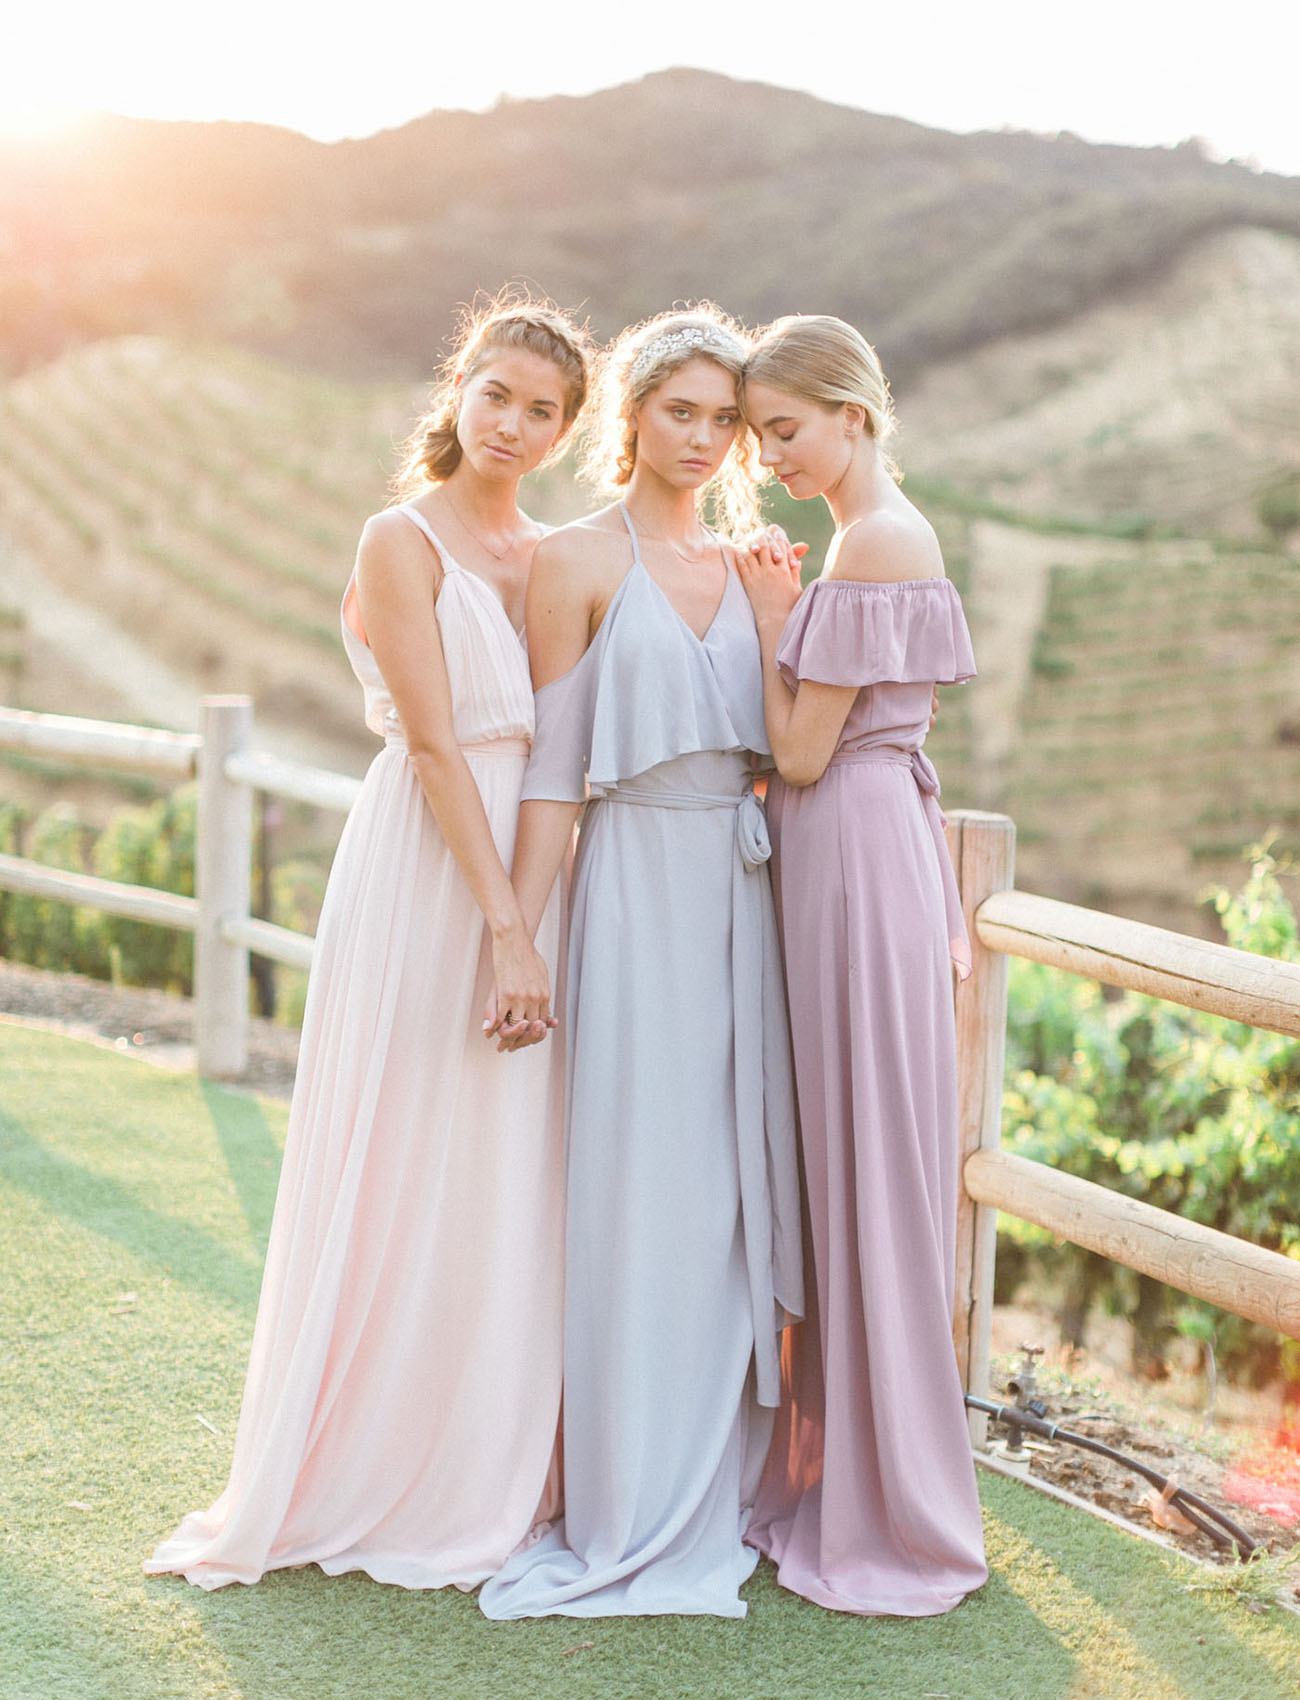 The new romantic bridesmaid dresses by joanna august green joanna august ombrellifo Image collections